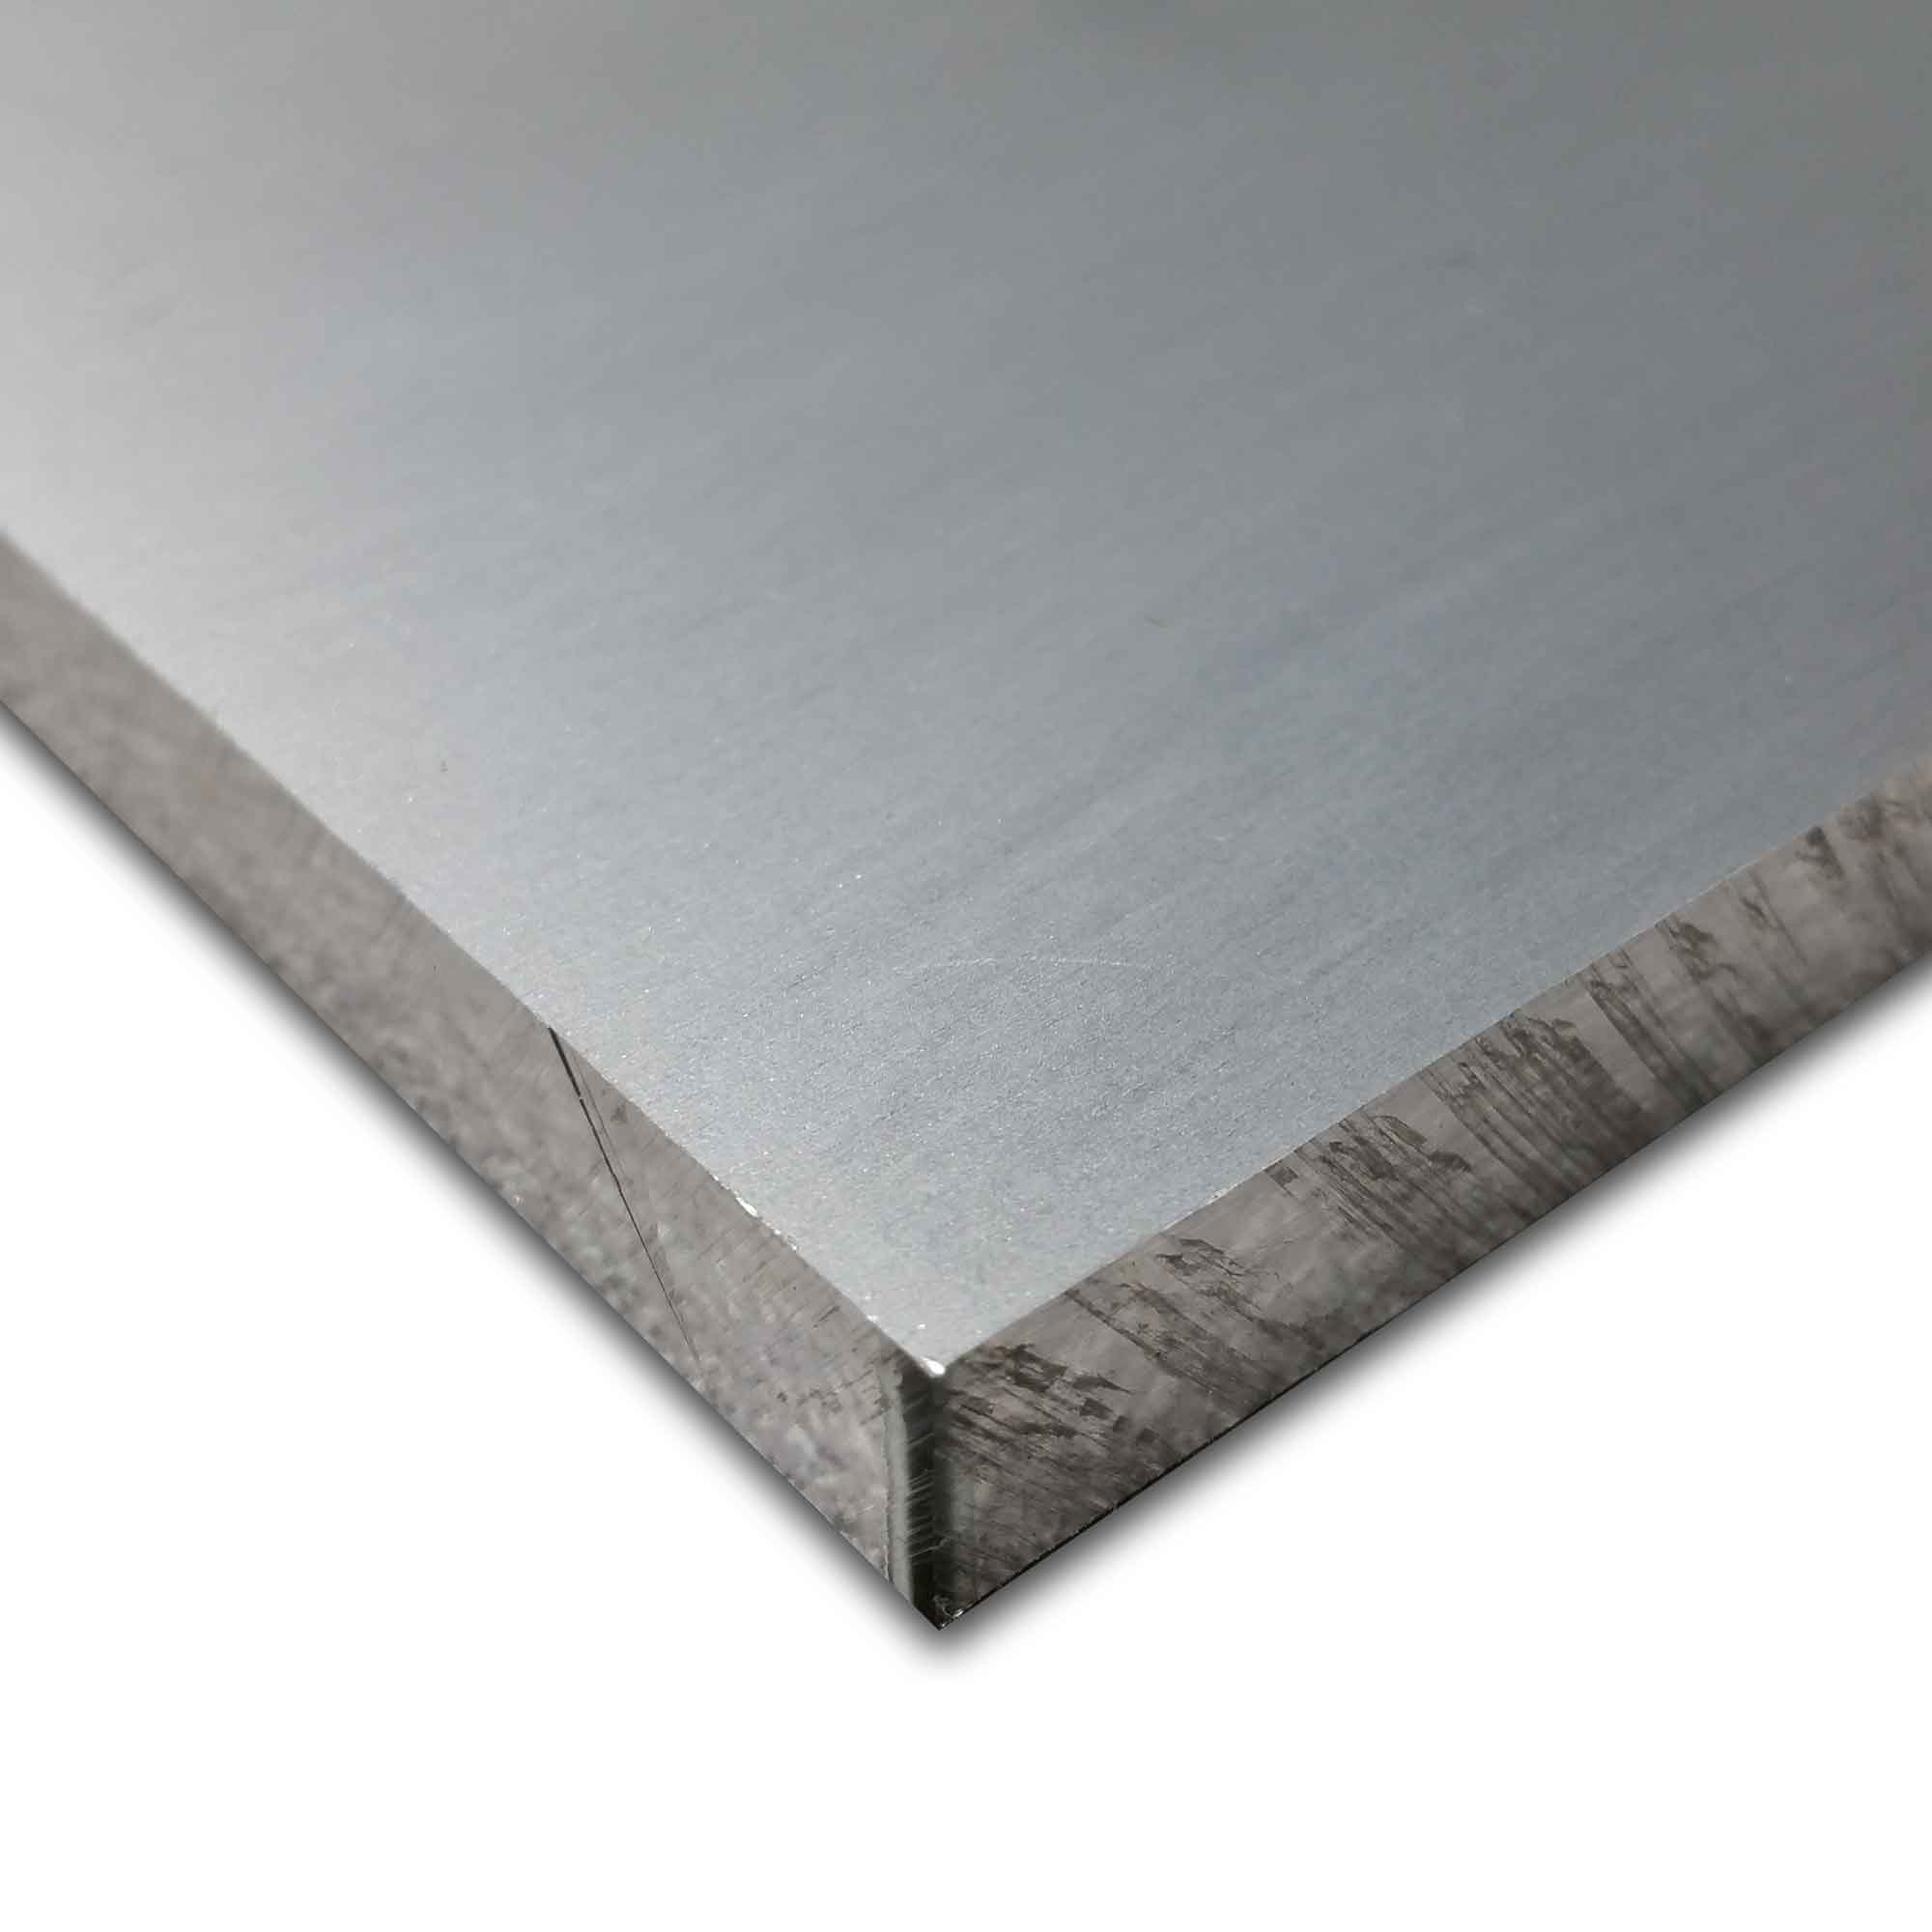 7050-T7651 Aluminum Plate, Thickness: 0.875 (7/8 inch), Width: 20 inches, Length: 24 inches